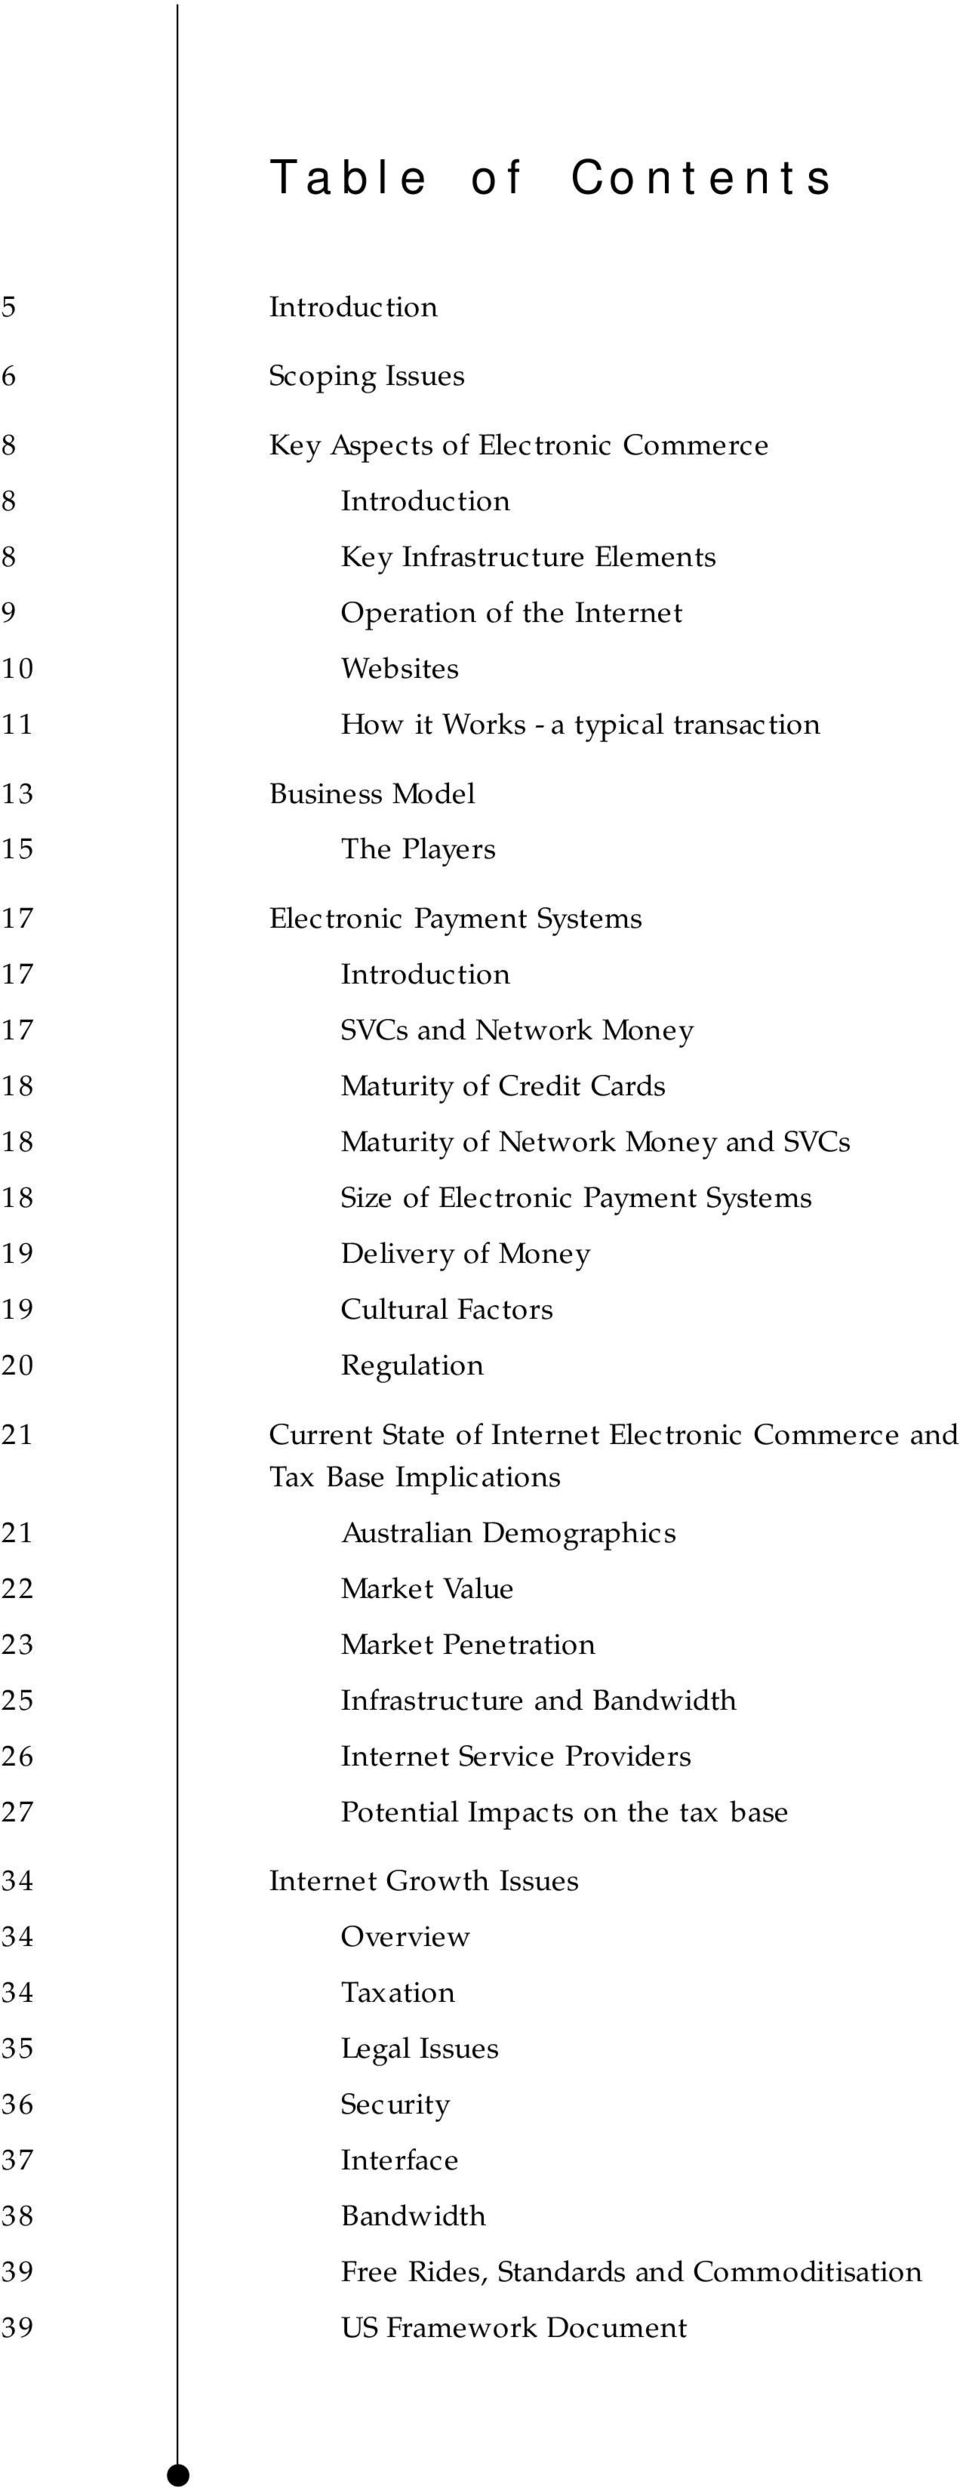 Electronic Payment Systems 19 Delivery of Money 19 Cultural Factors 20 Regulation 21 Current State of Internet Electronic Commerce and Tax Base Implications 21 Australian Demographics 22 Market Value